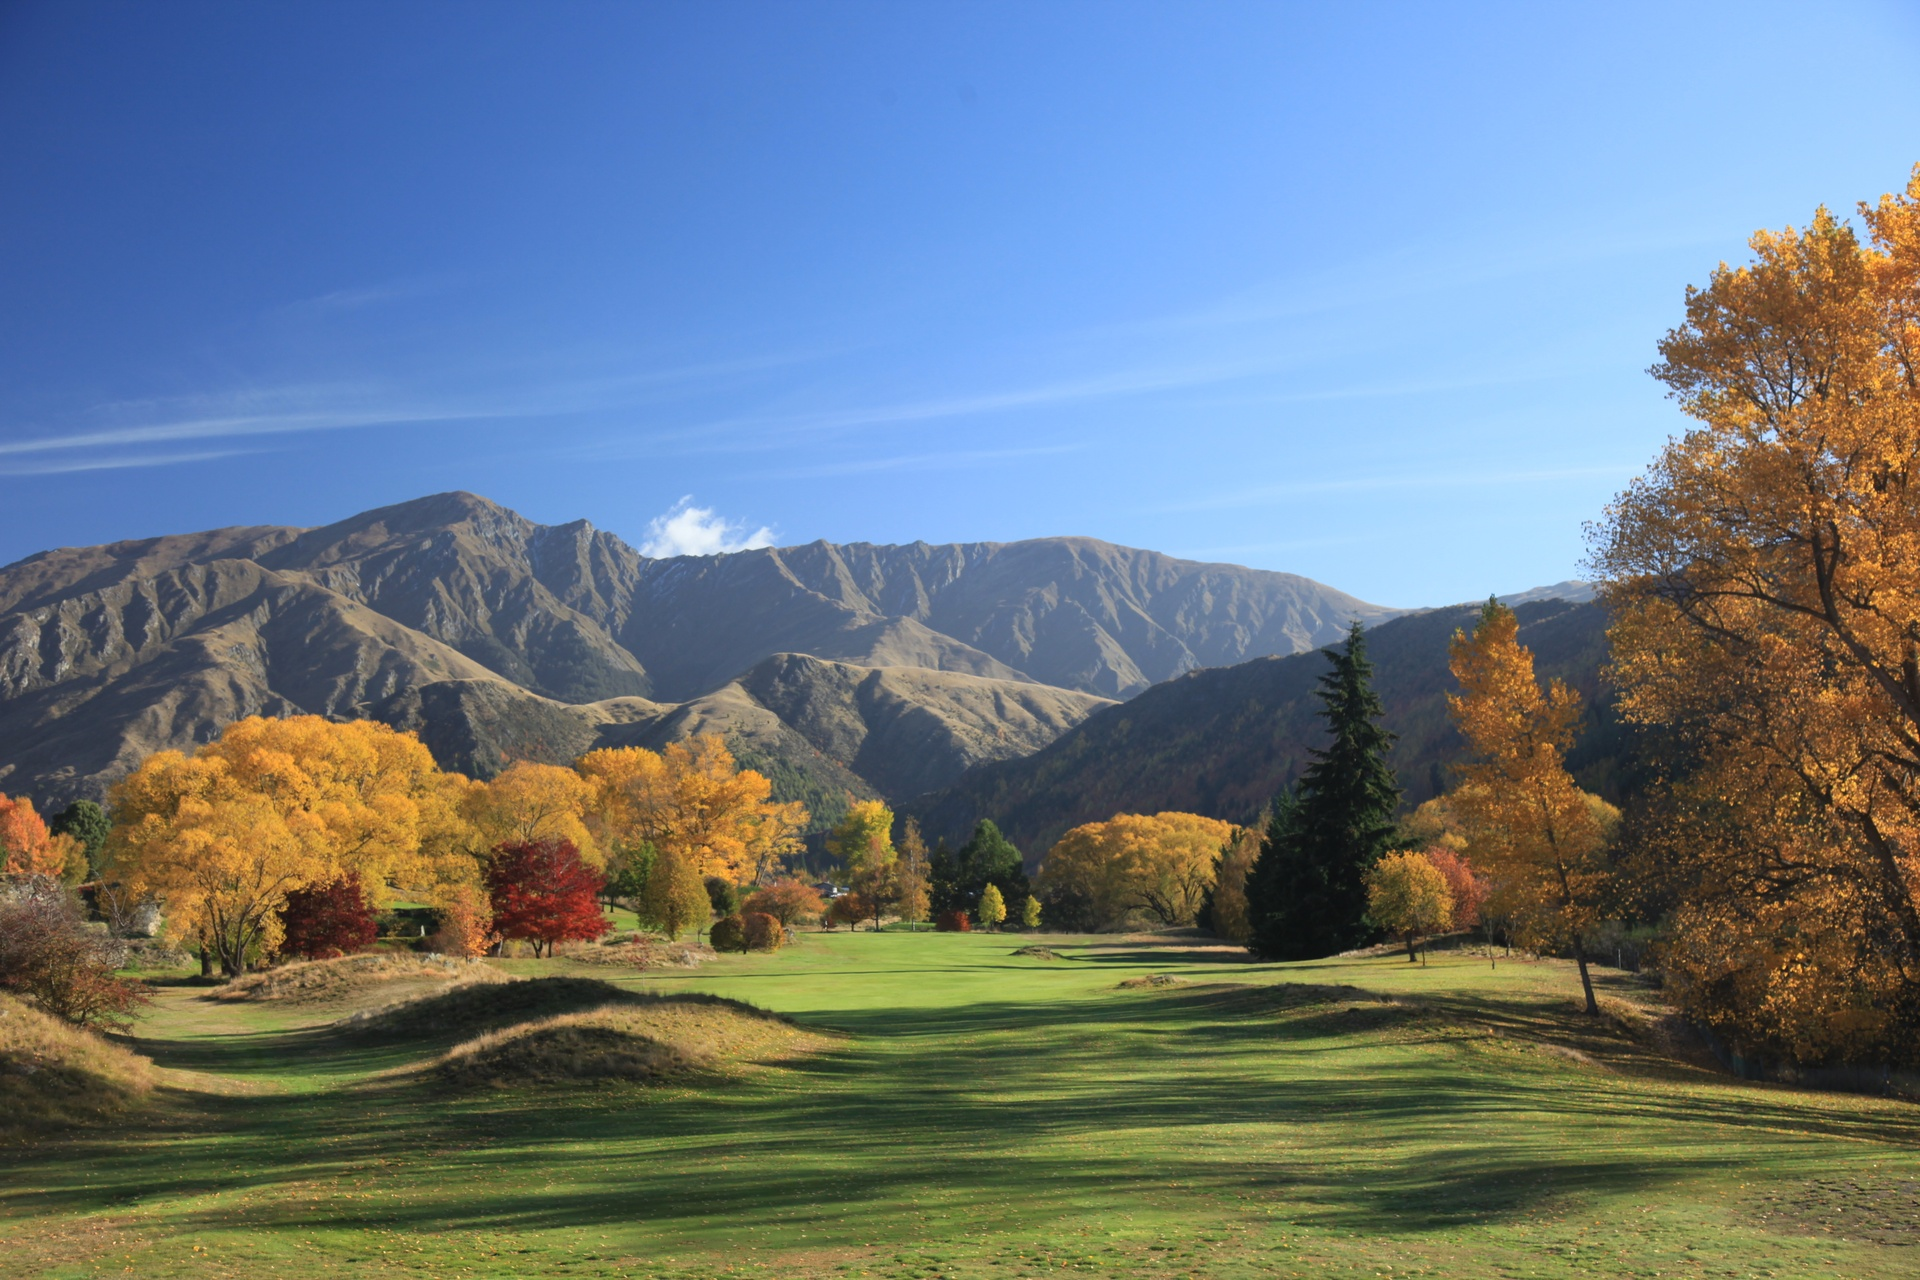 2851-Arrowtown-Golf-Club-Gary-Lisbon.jpg